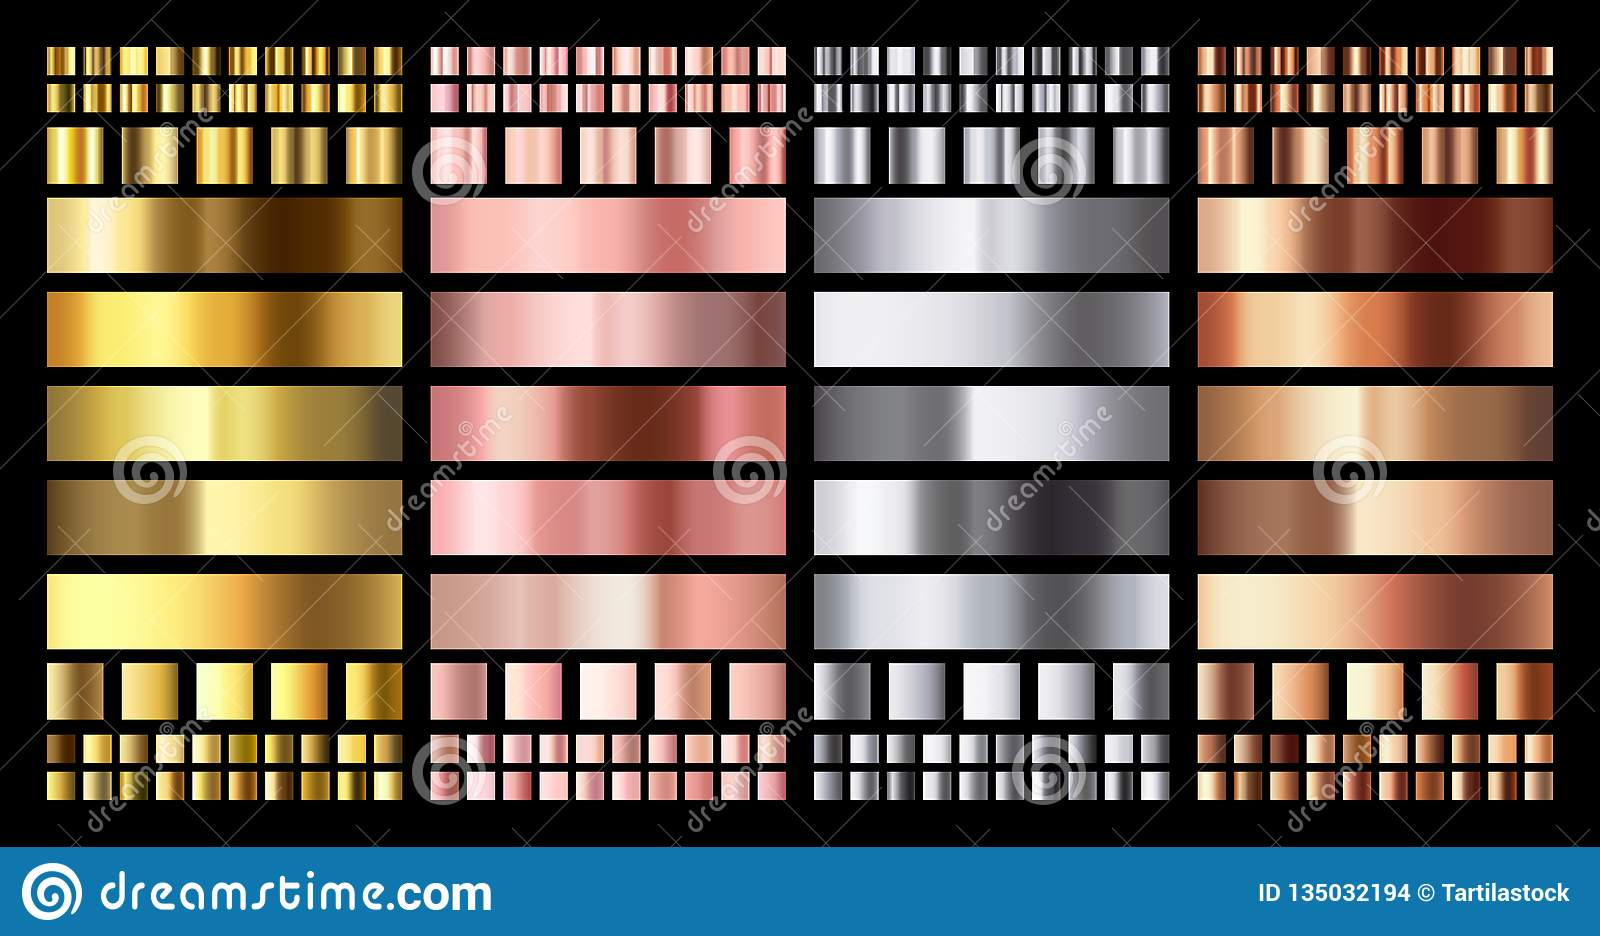 Elegant metallic gradient. Shiny rose gold, silver and bronze medals gradients. Golden, pink copper and chrome metal